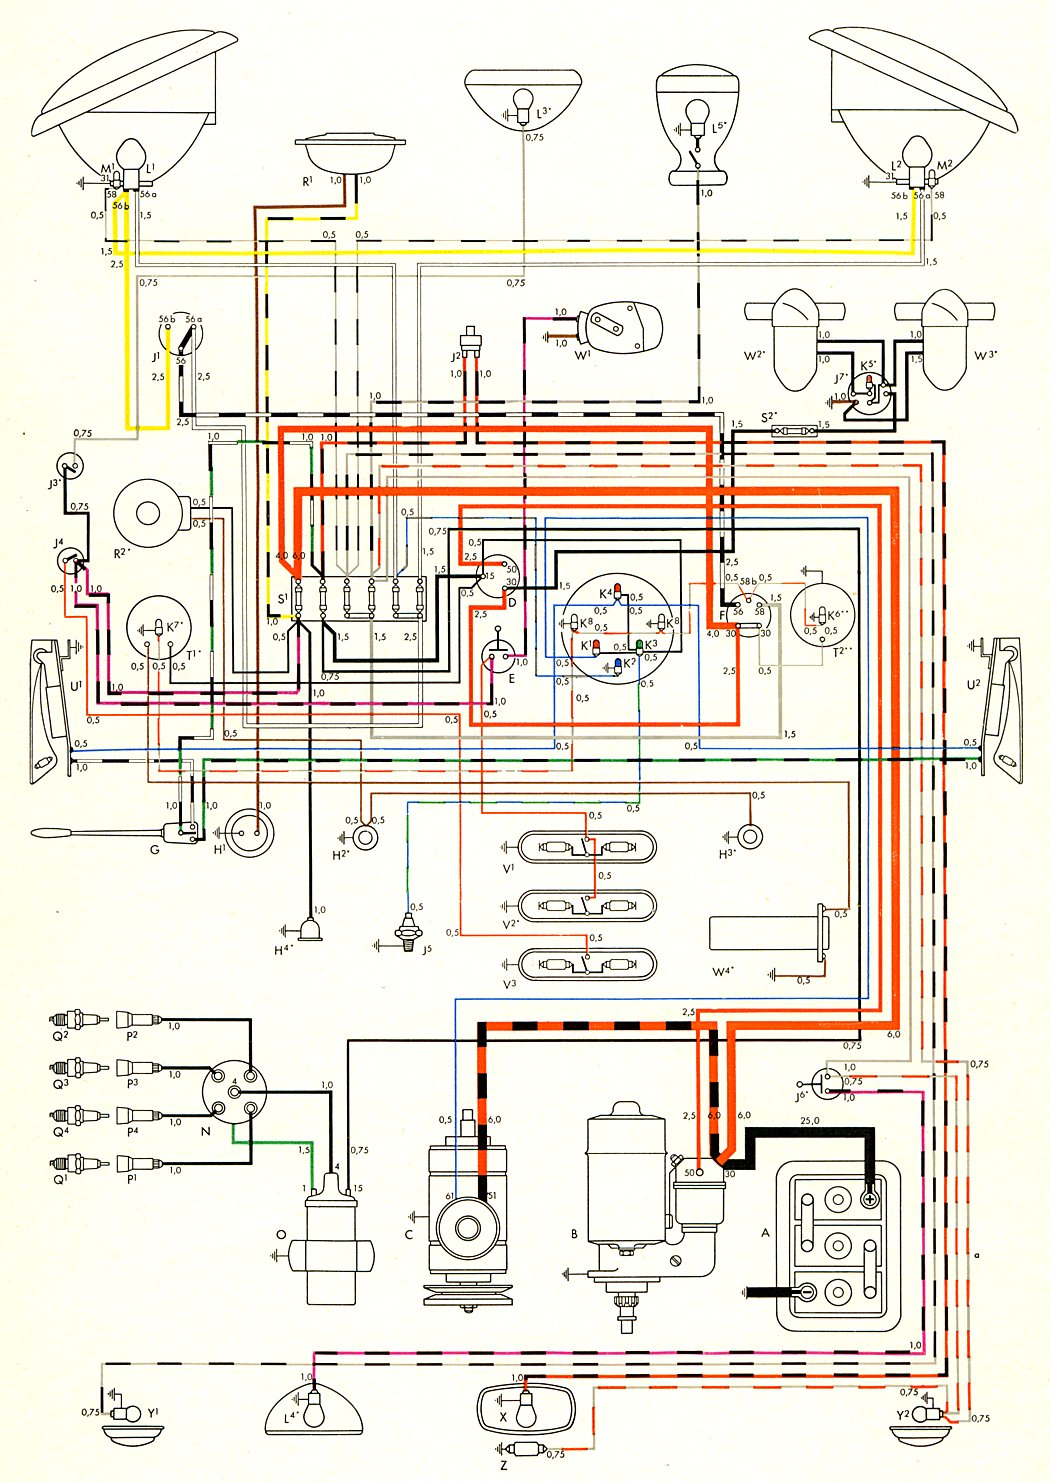 bus_nov57 thesamba com type 2 wiring diagrams can bus wiring diagram at webbmarketing.co